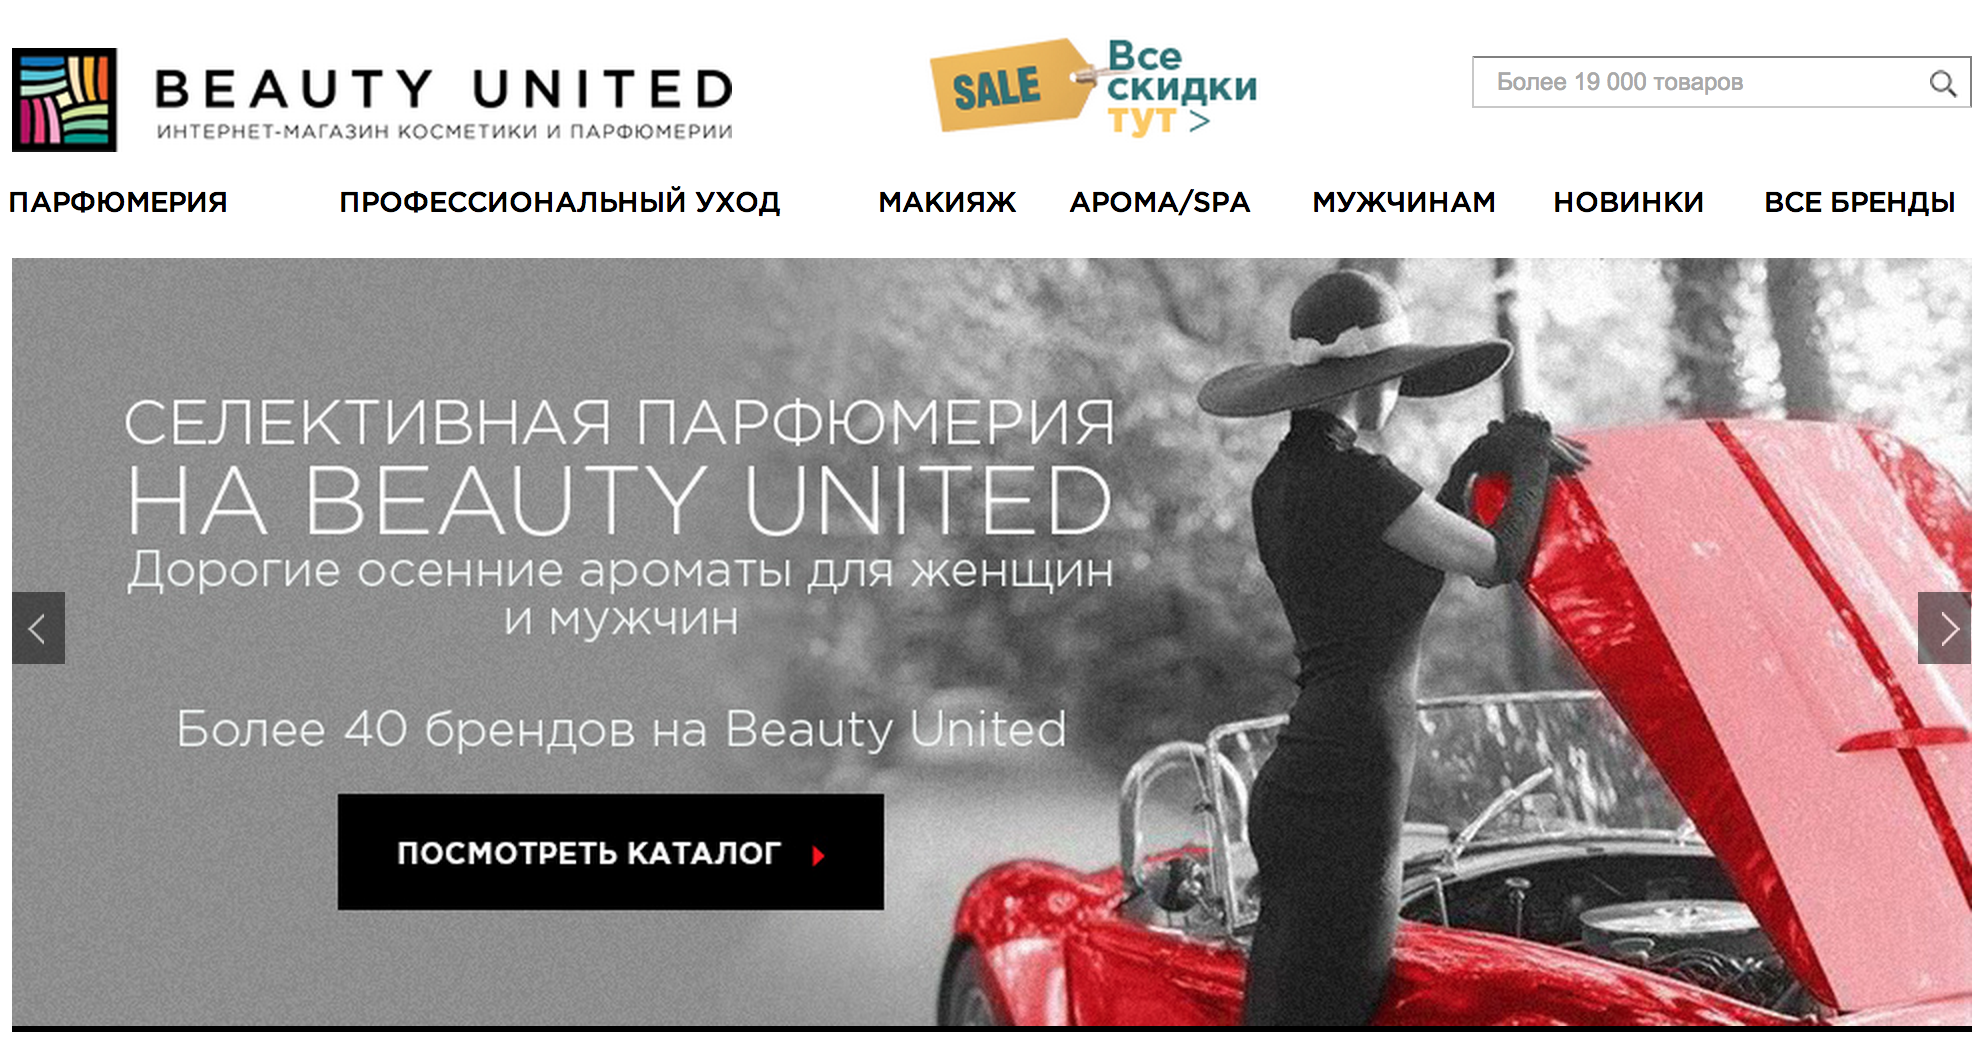 Интернет-магазин Beauty United